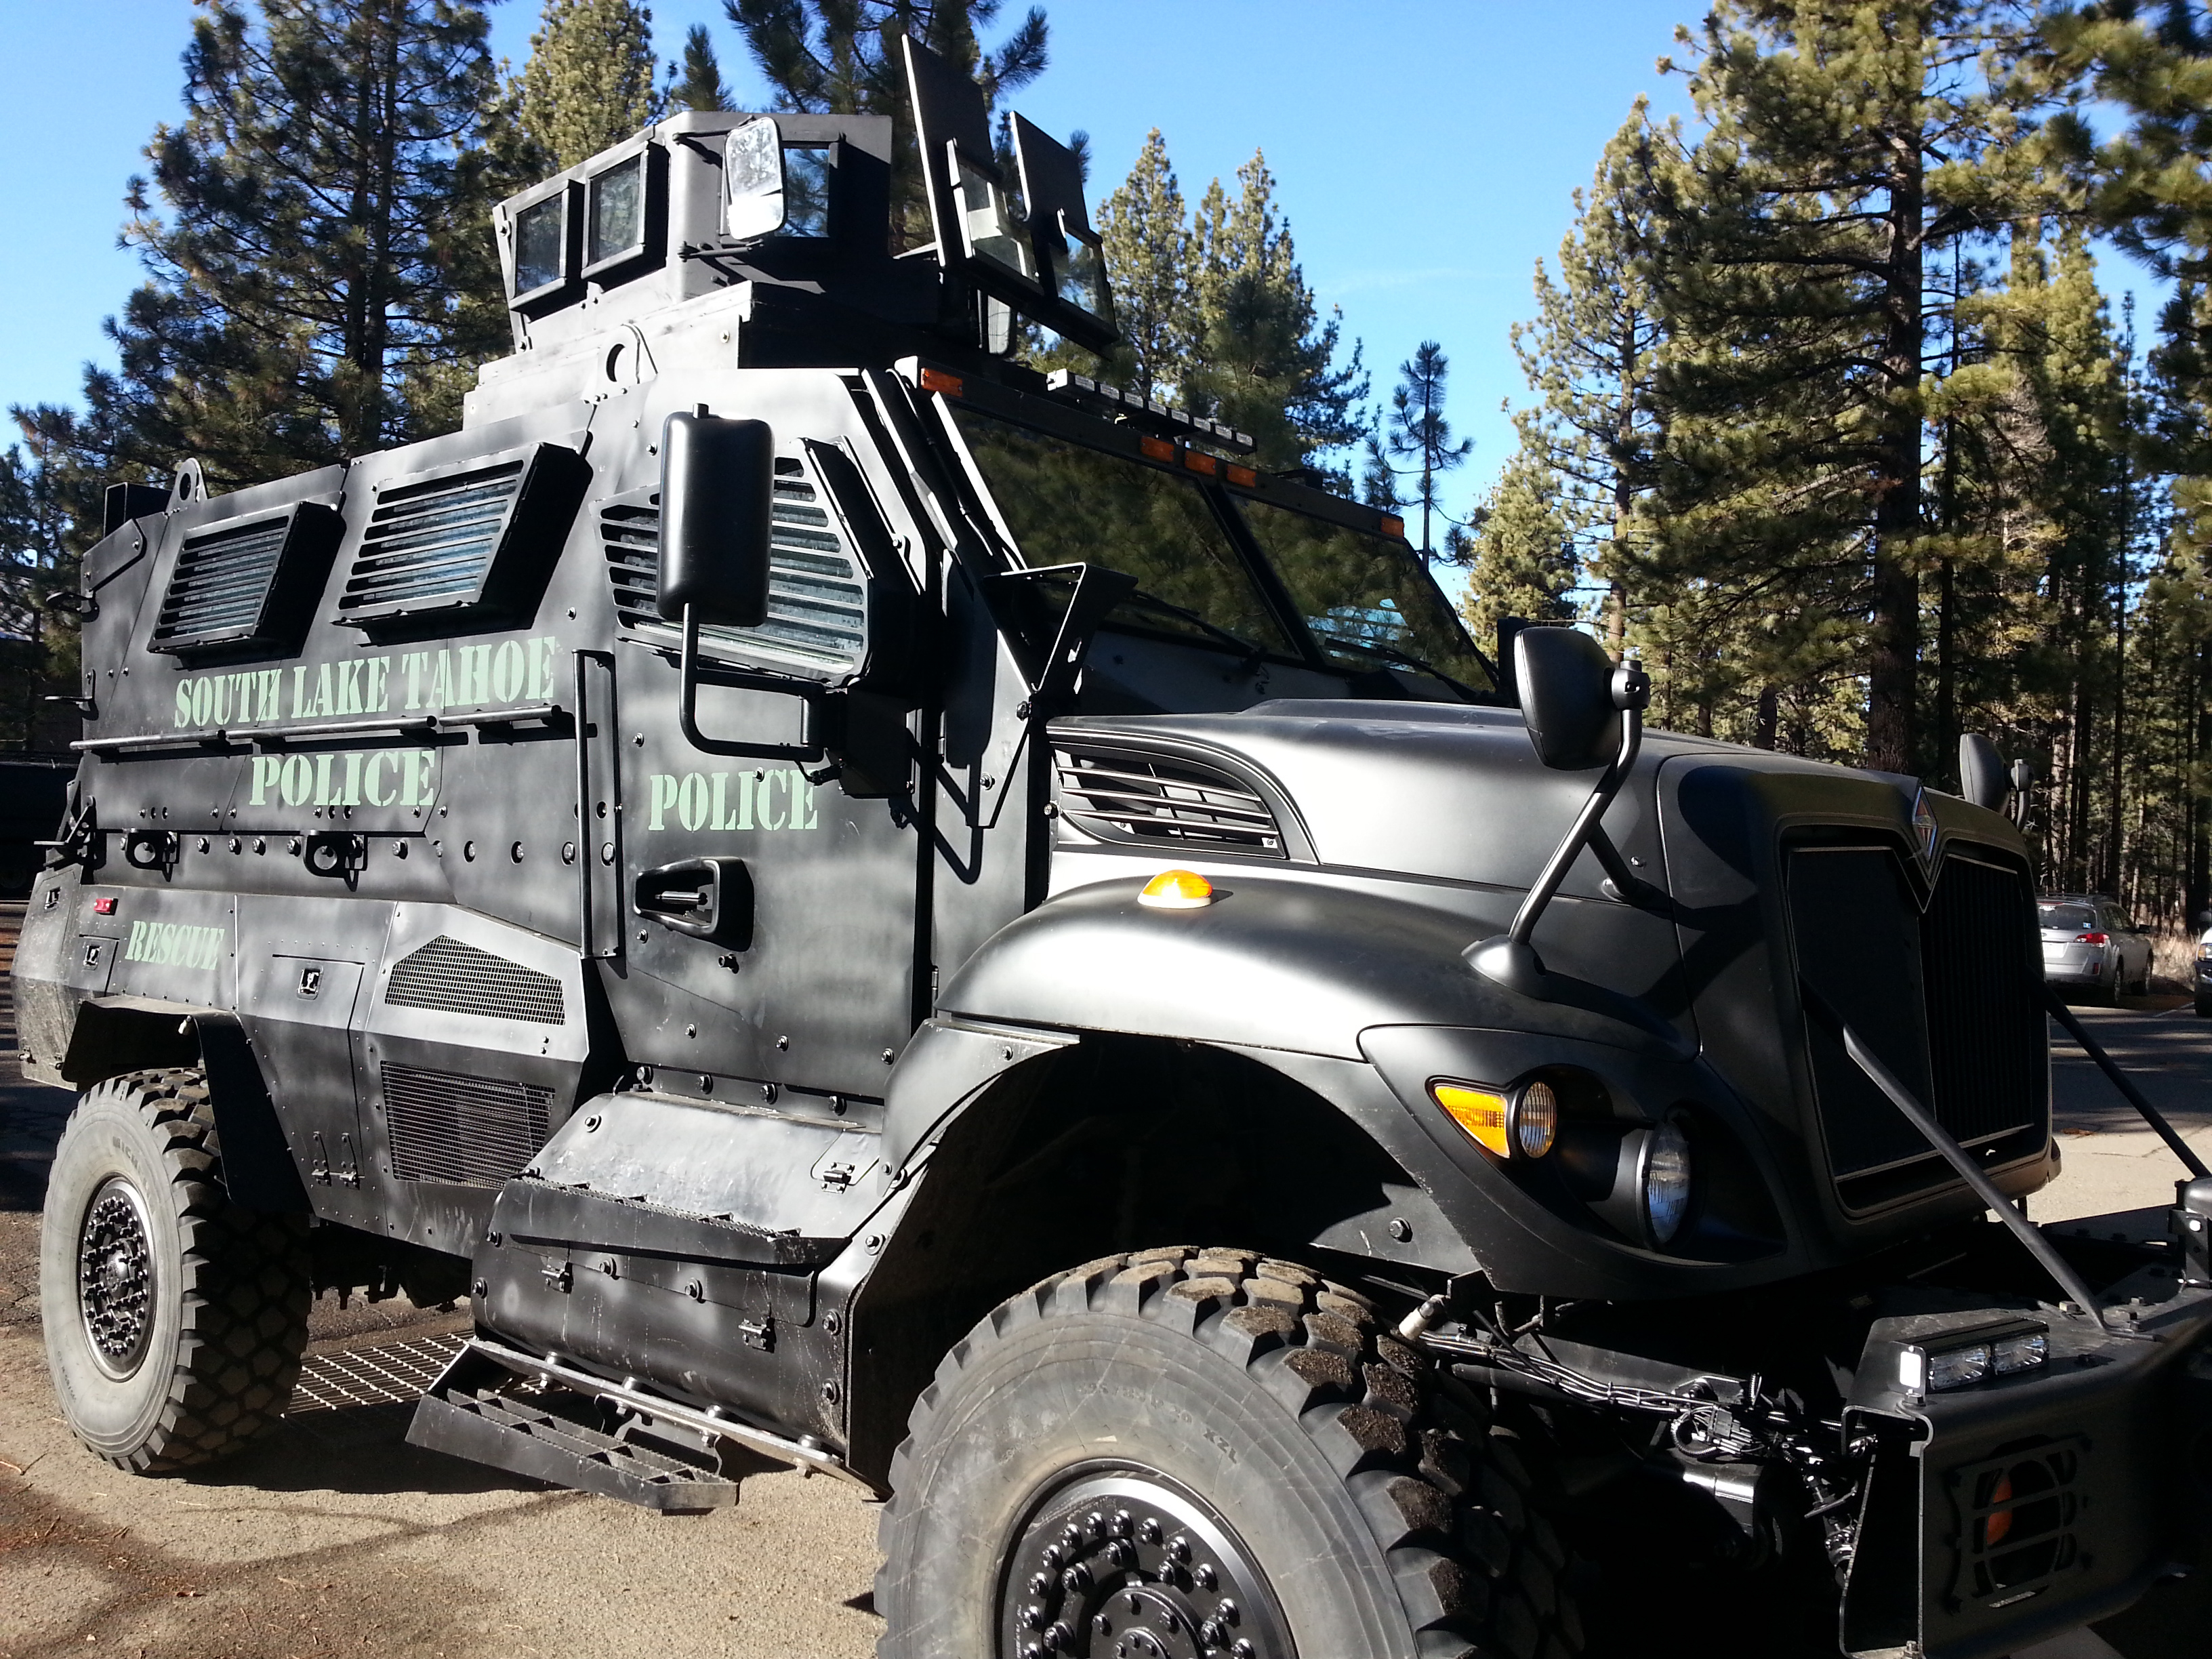 South Lake Tahoe Police Receives SWAT Vehicle From ...